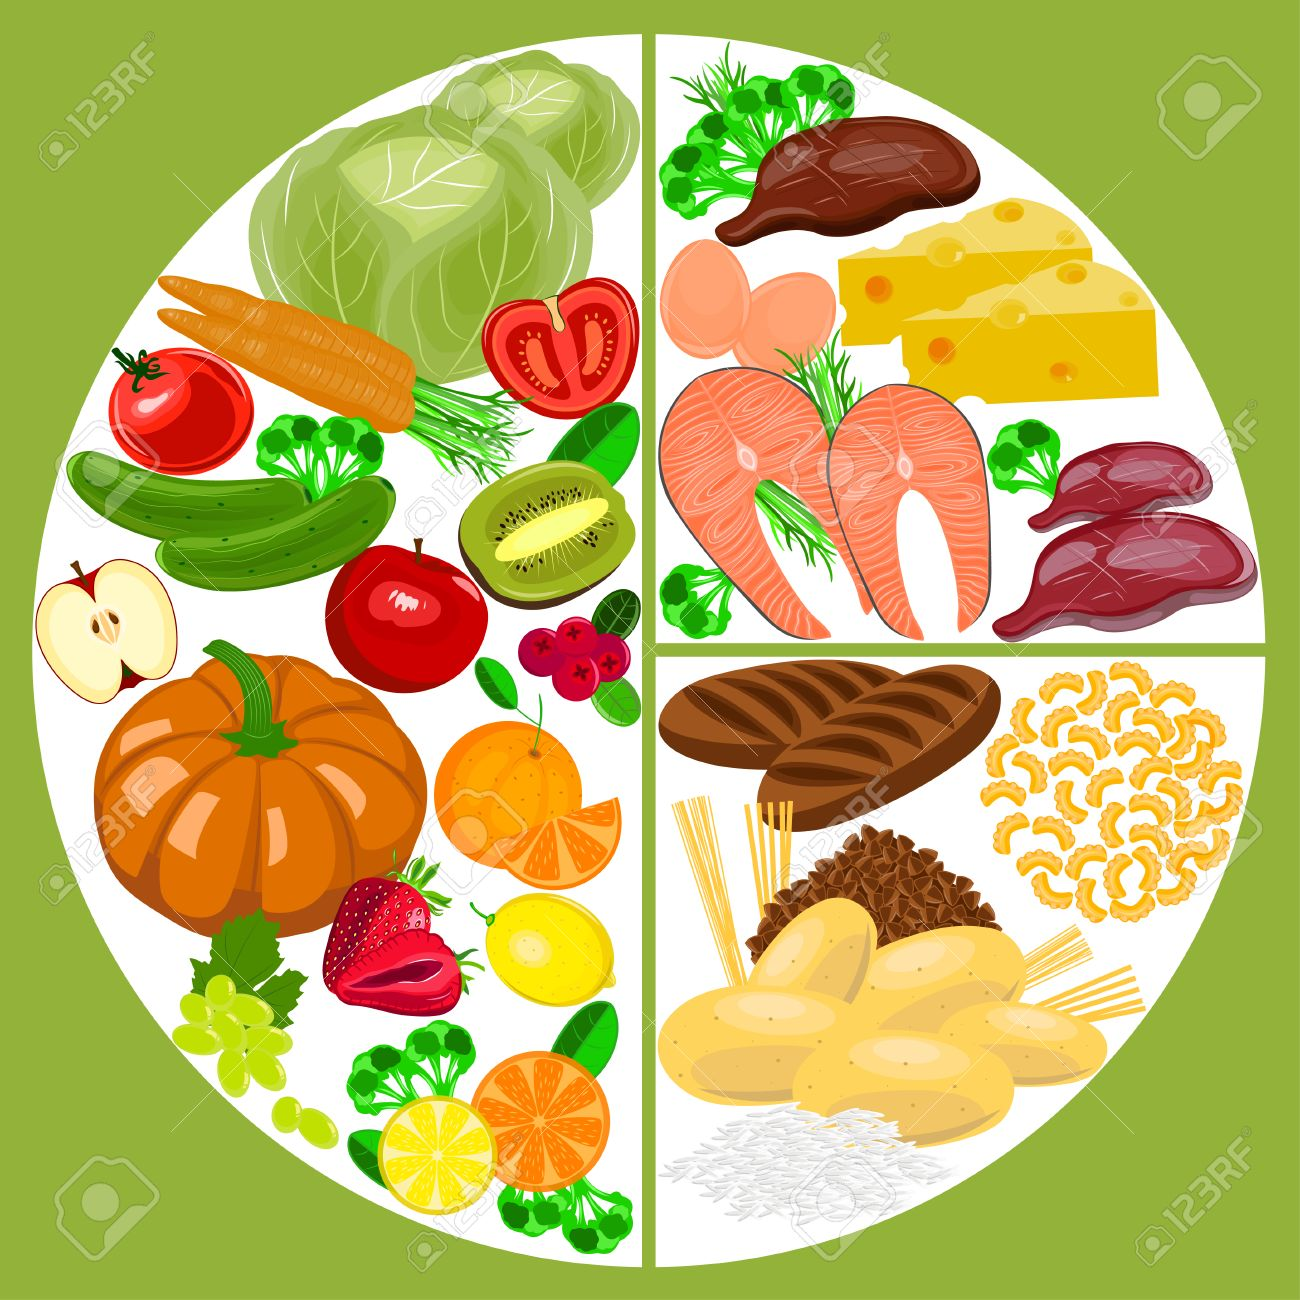 hight resolution of healthy eating food plate healthy nutrition balance diagram stock vector 69463352